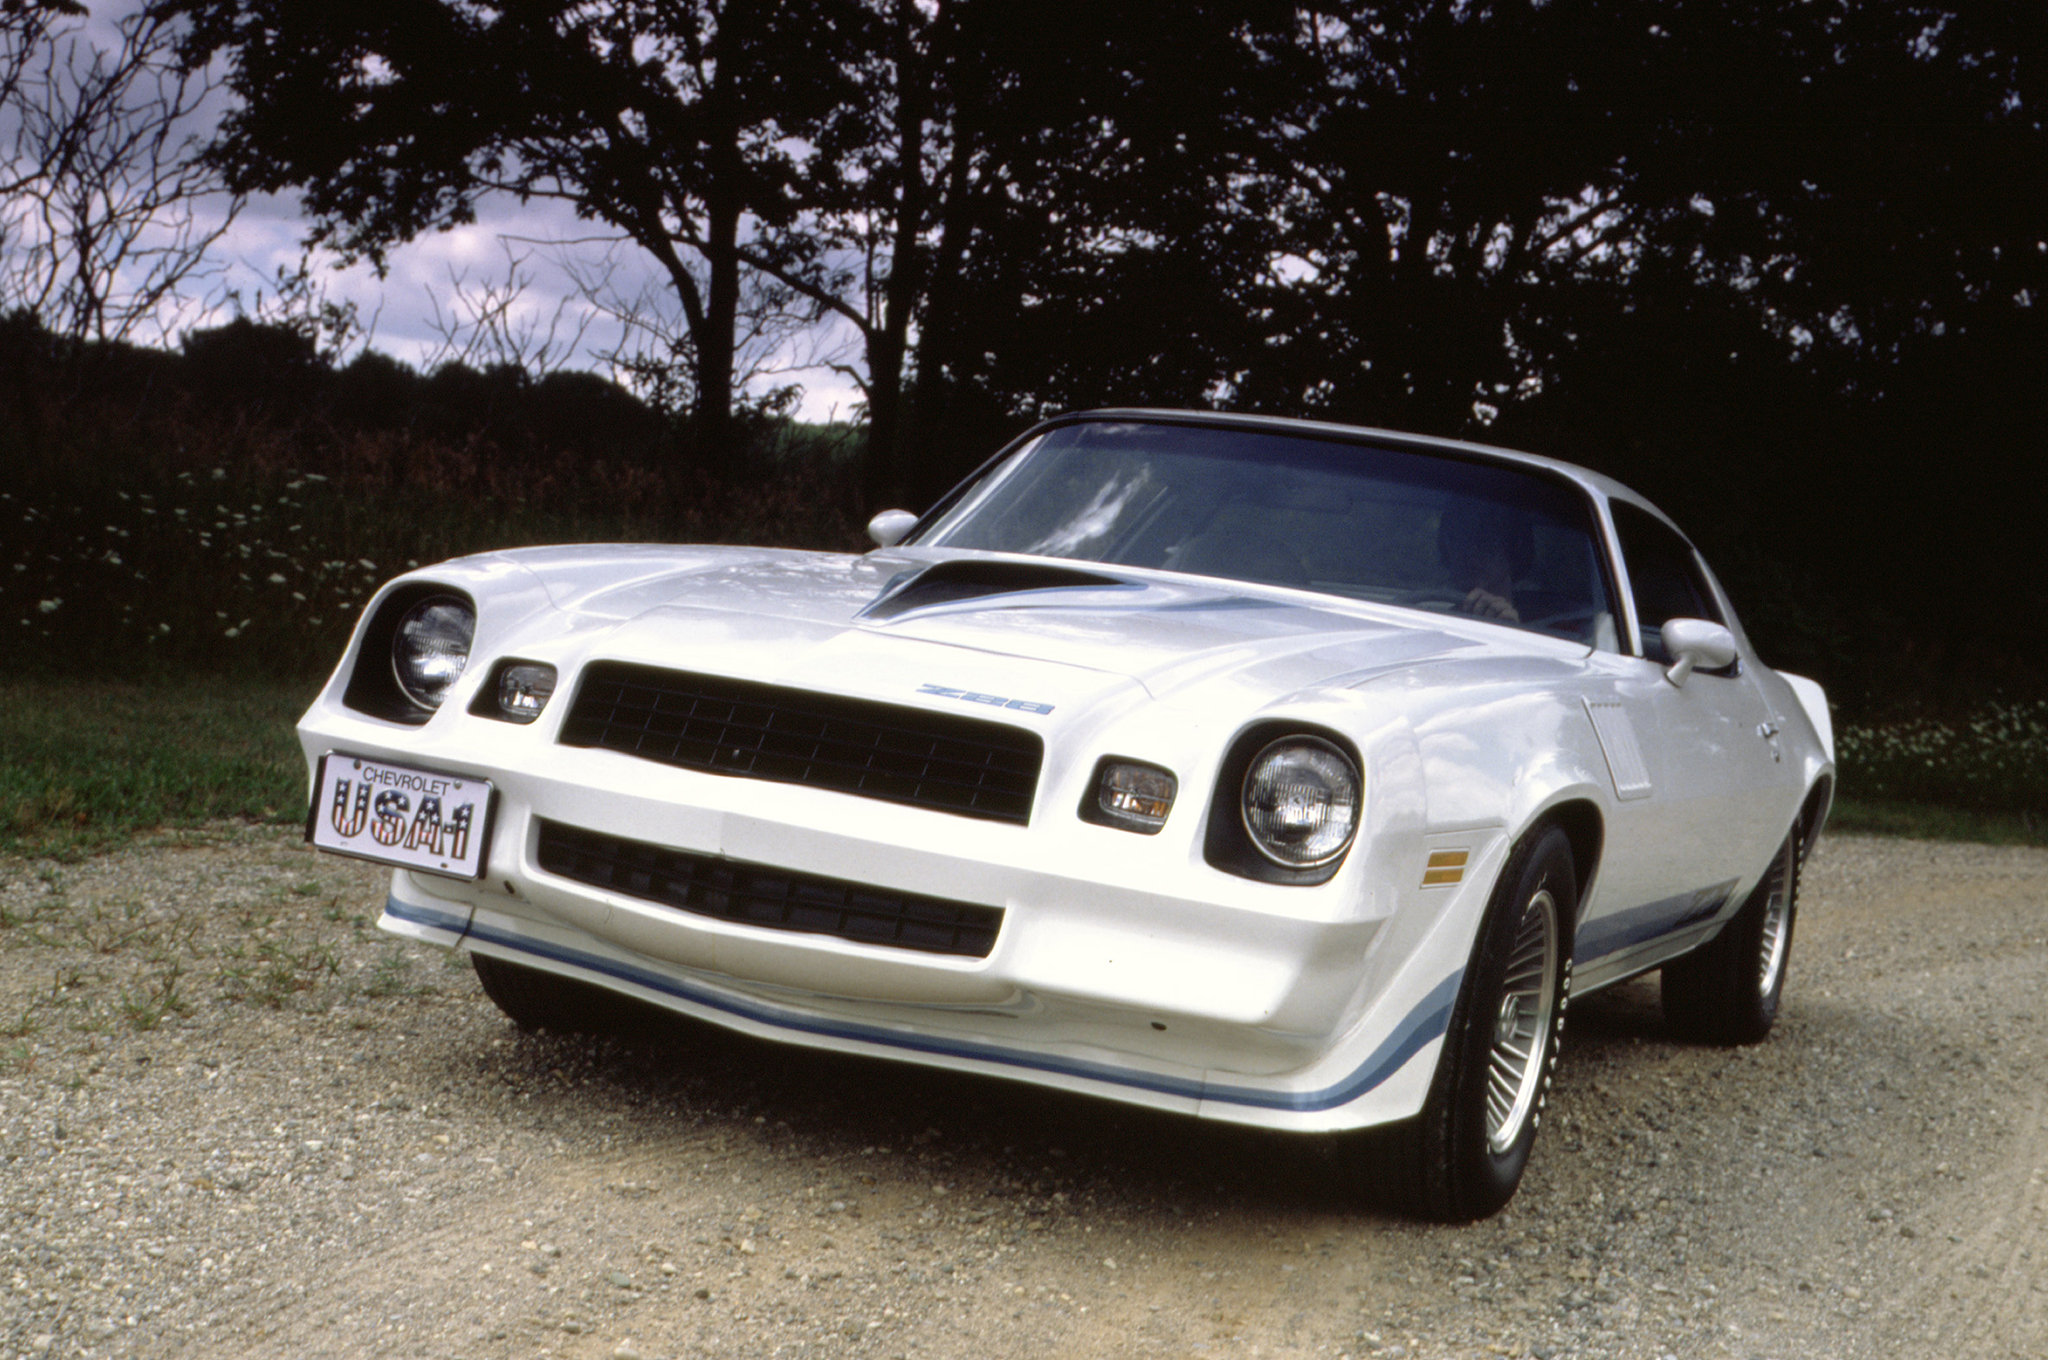 The Camaro helped define the late 1970s and sales reached their all-time high in 1979, at 282,571. Nearly 85,000 of them were Z28s. Most ended up on the cover of Car Craft.